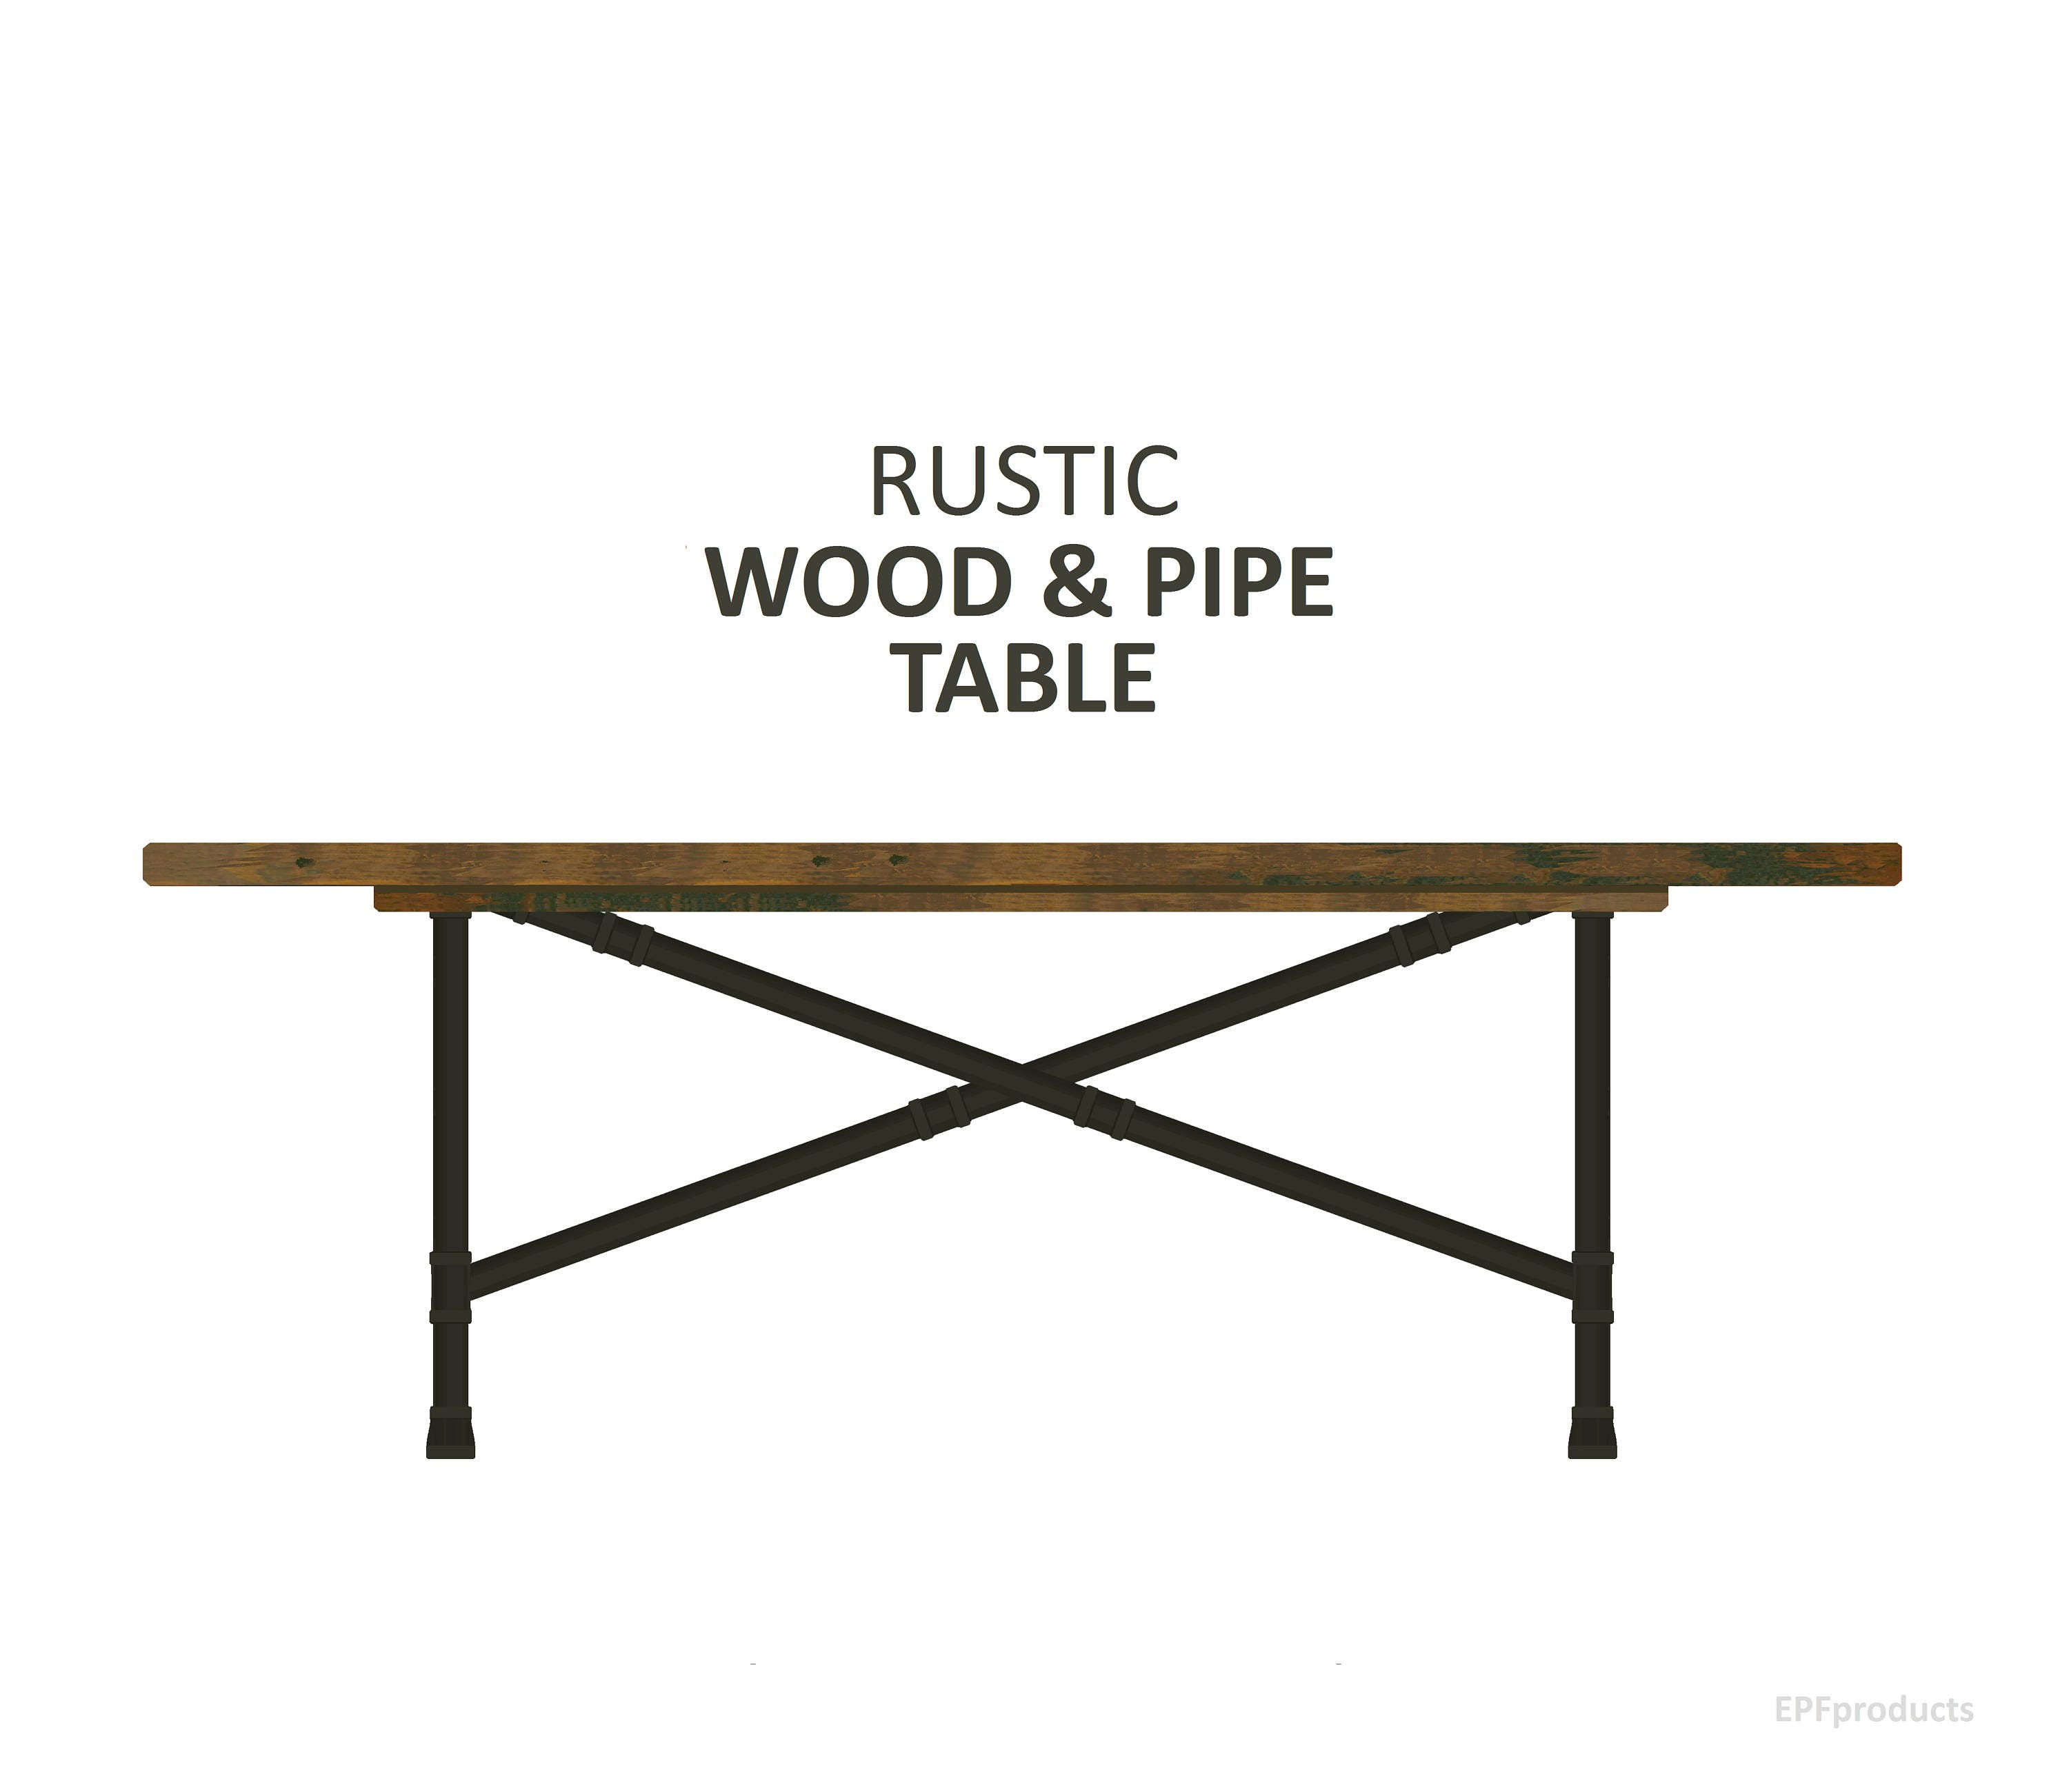 X pipe dining table rustic wood pipe table trestle table for Rustic pipe table